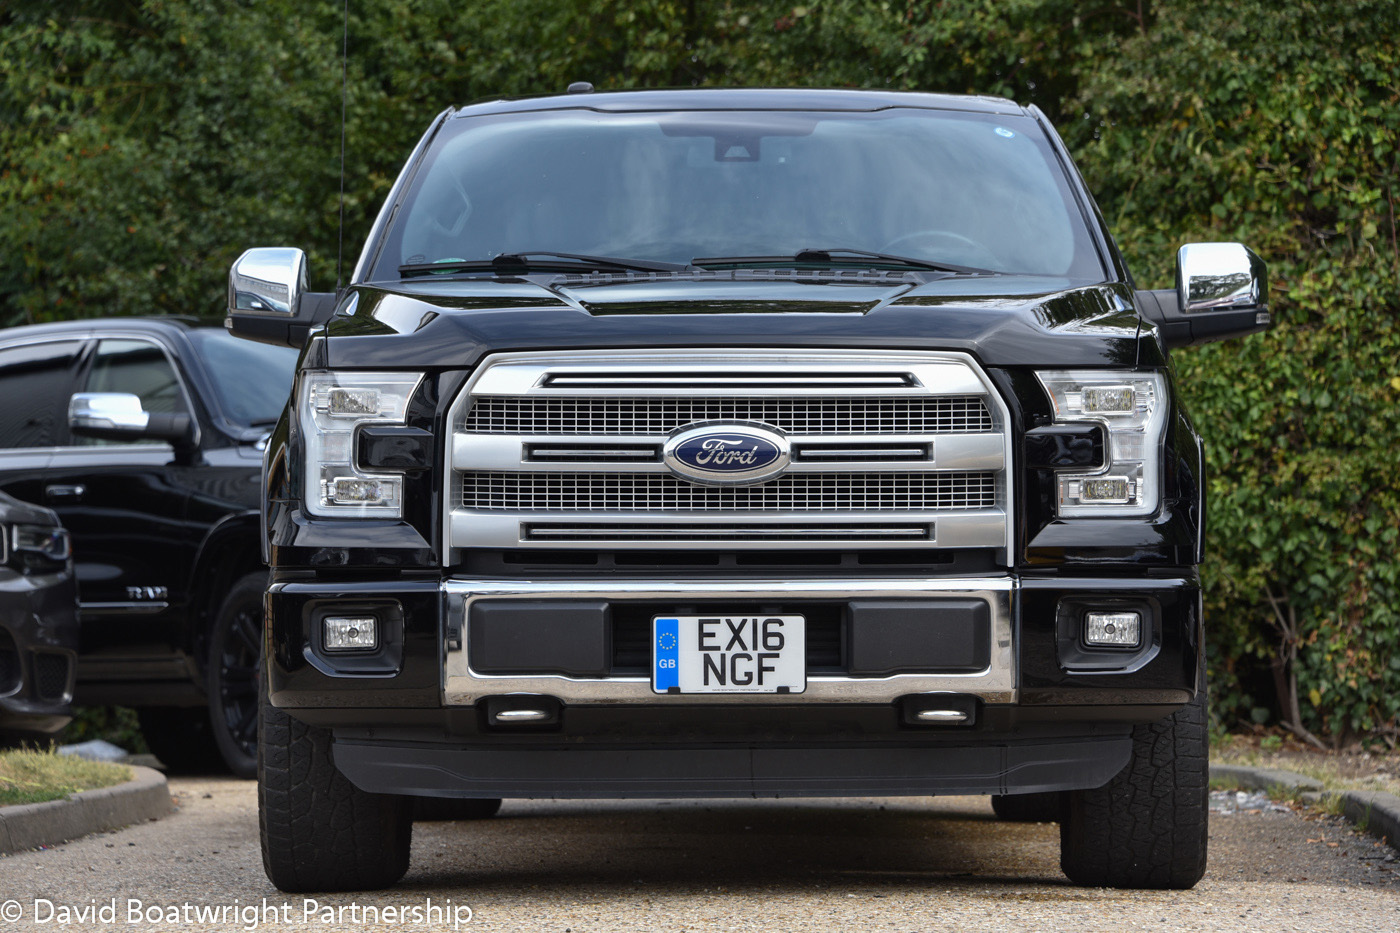 Black F150 Platinum 4x4 Supercrew with Prins LPG